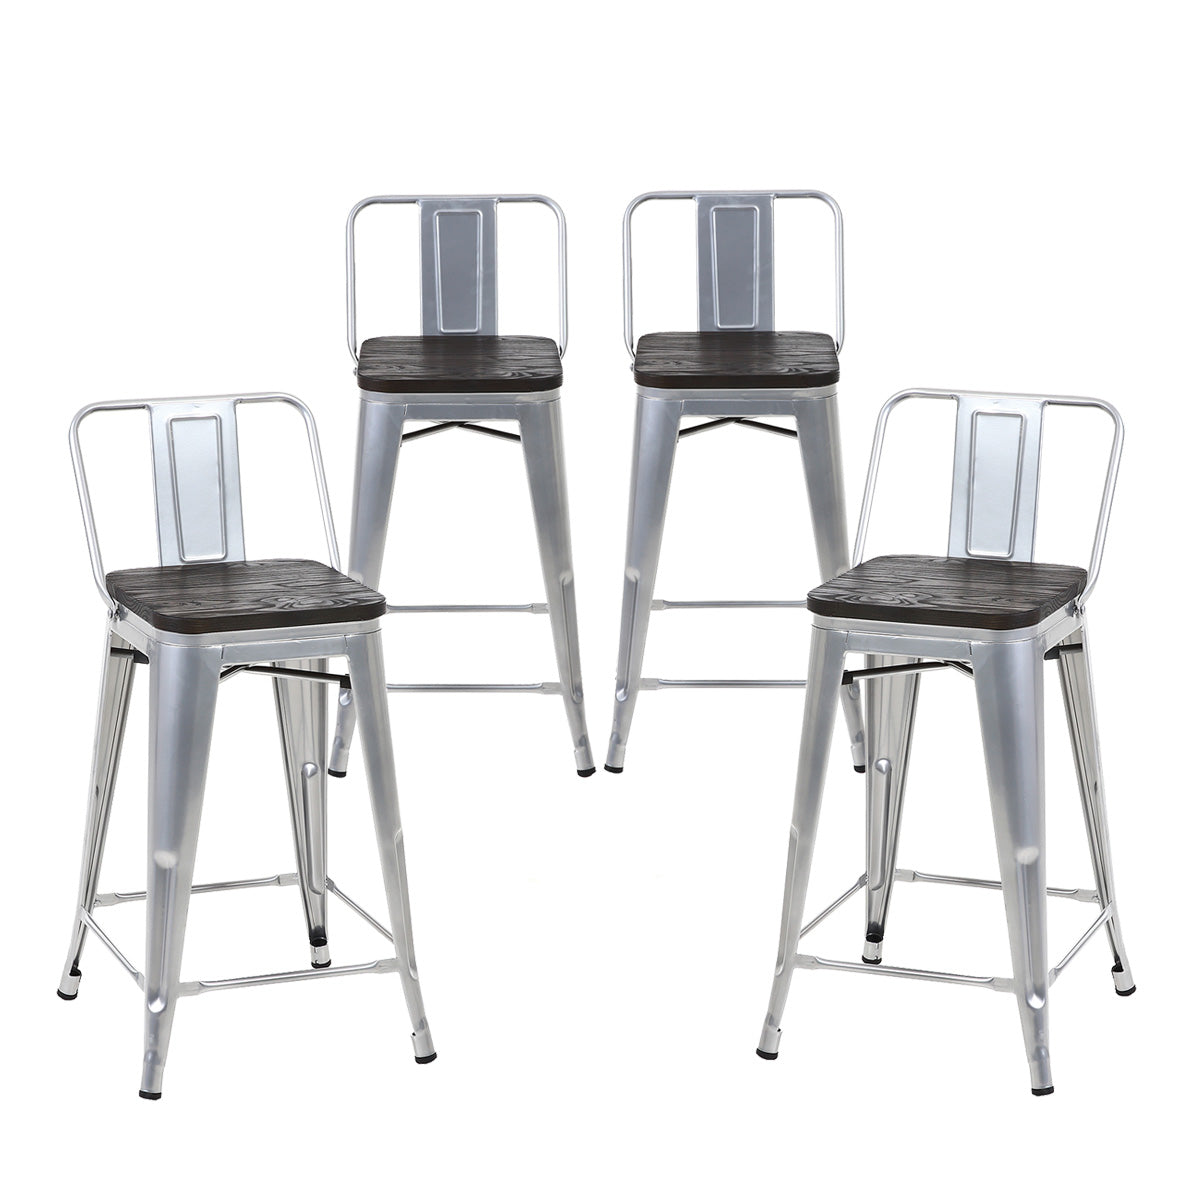 Miraculous Buschman Set Of 4 Grey Wooden Seat 24 Inch Counter Height Metal Bar Stools With Medium Back Indoor Outdoor Ibusinesslaw Wood Chair Design Ideas Ibusinesslaworg